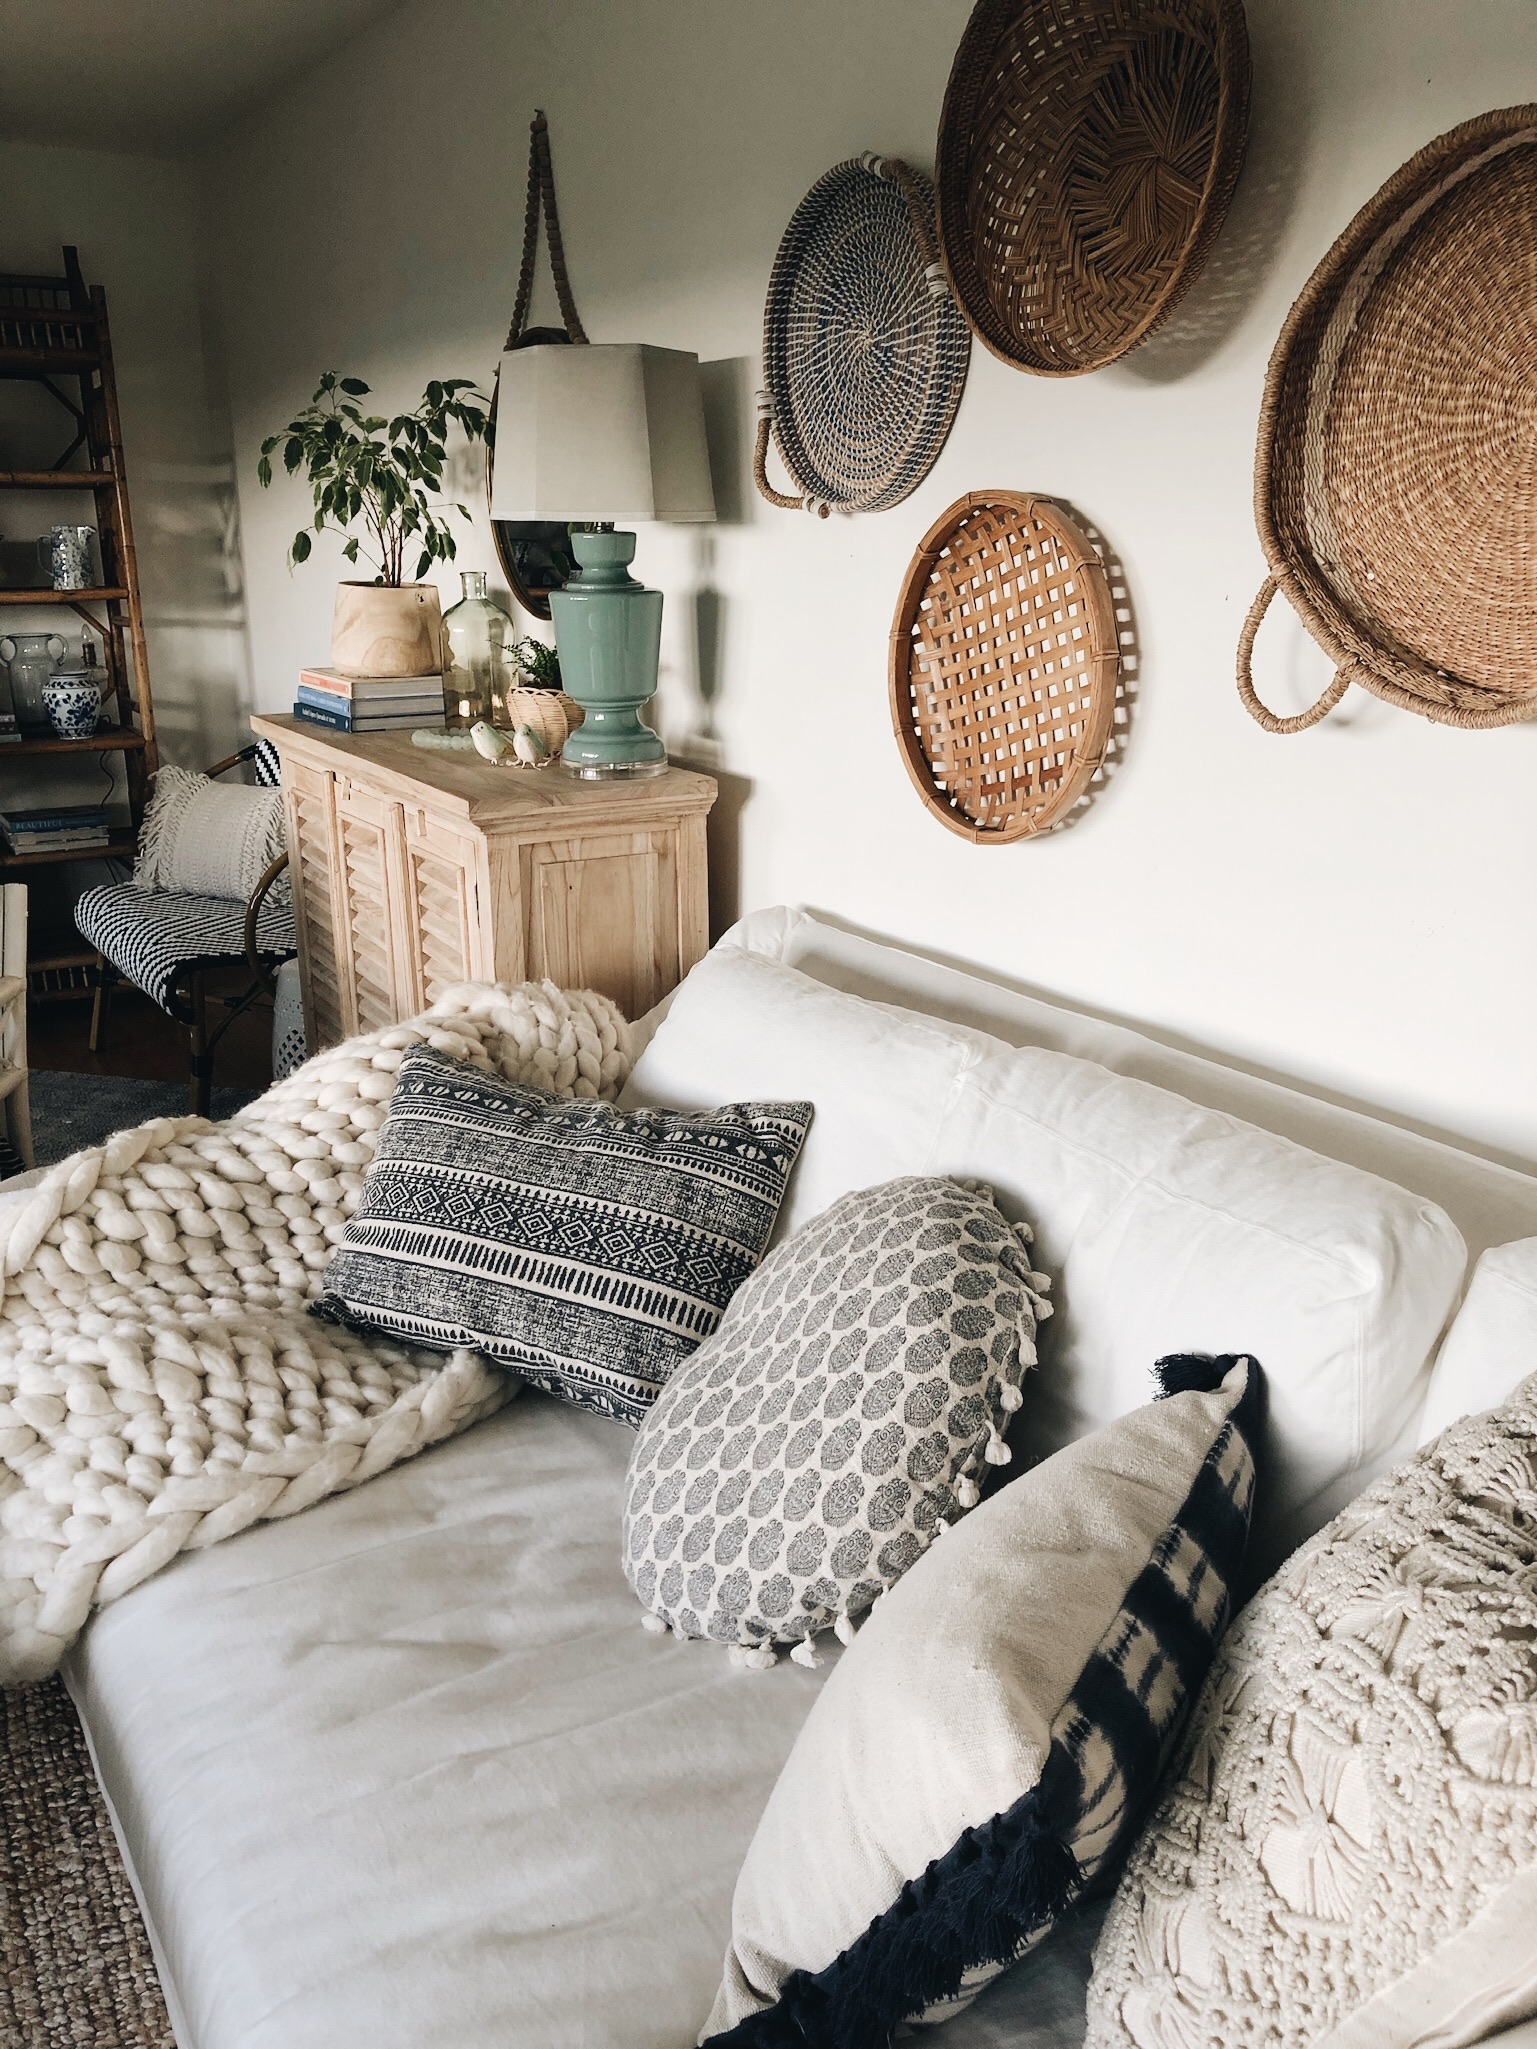 Get Cozier for Fall Rearranging What You Have!